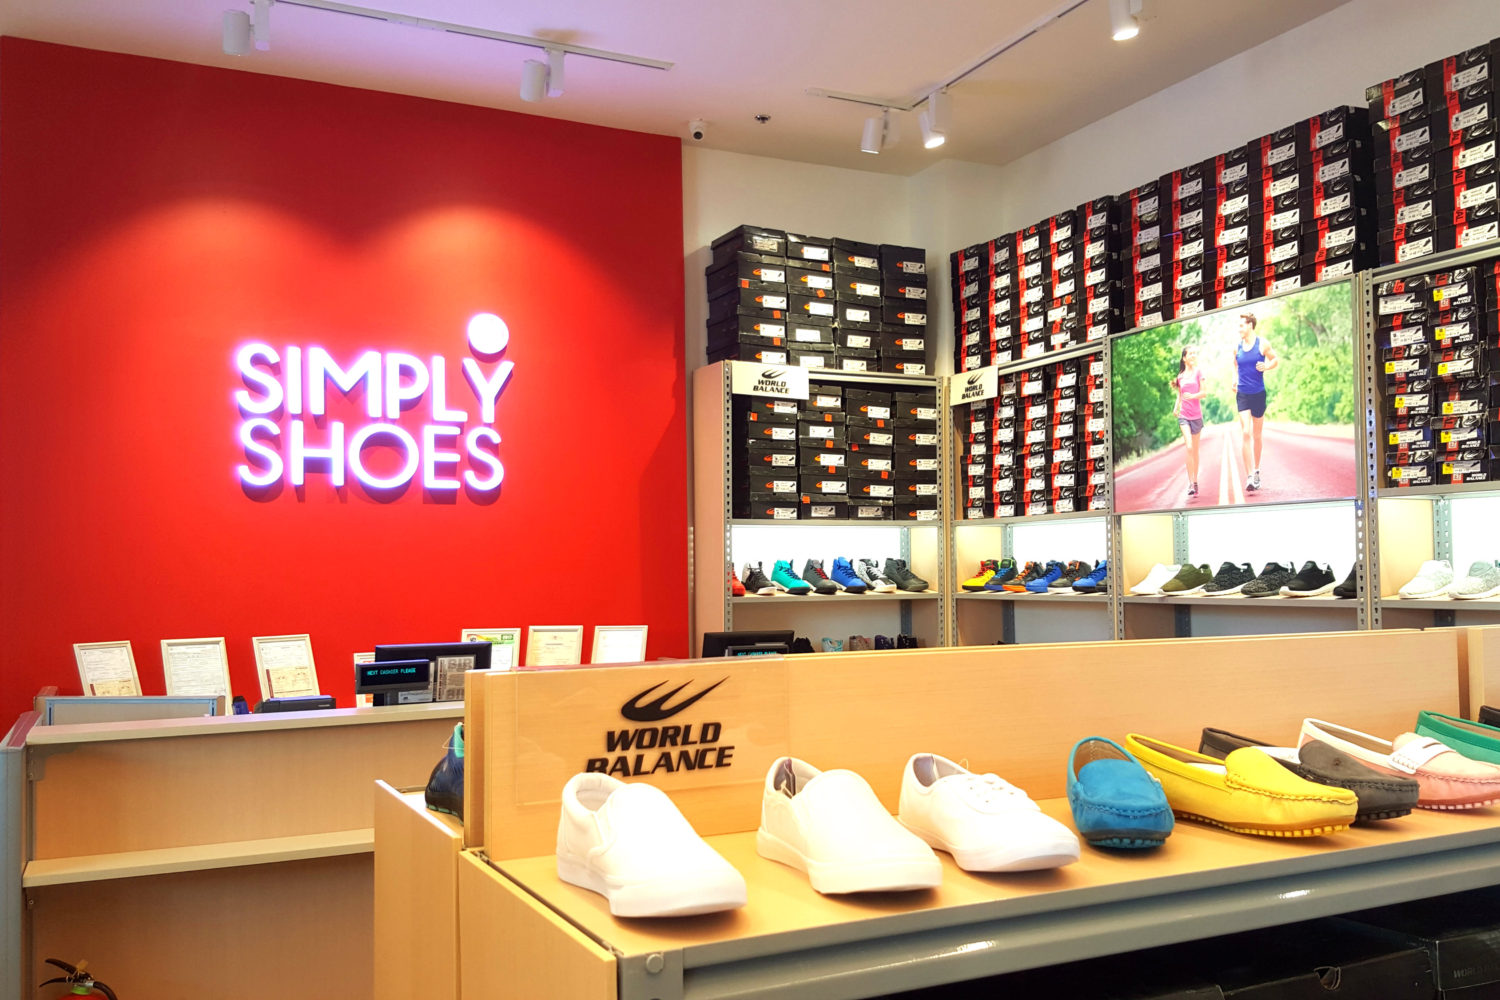 Shoe Stores of Simply Shoes - P500 Can